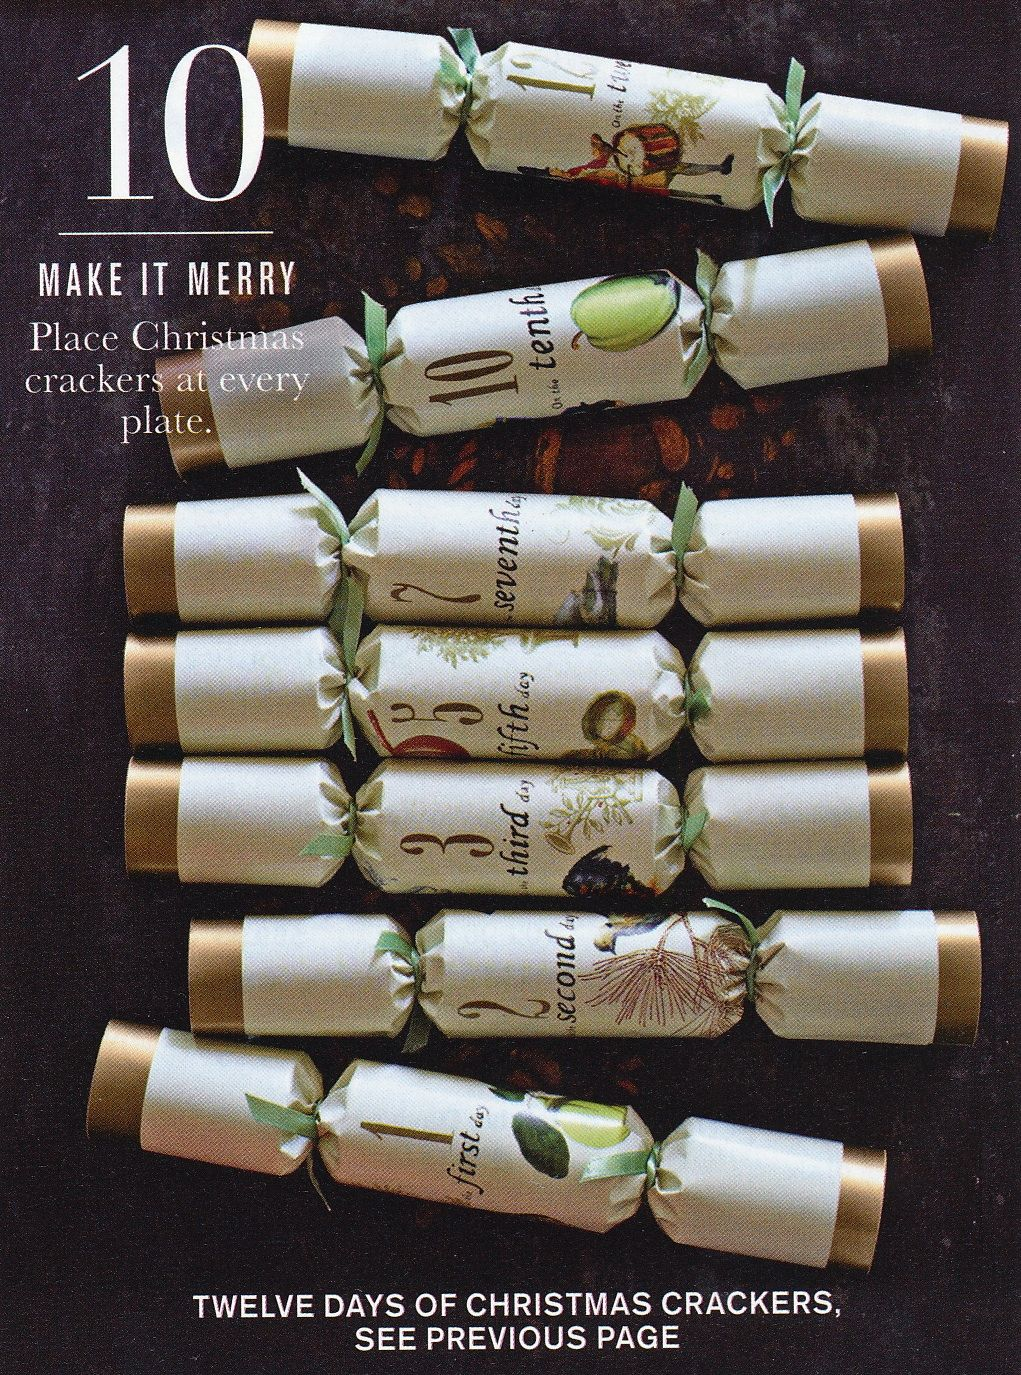 Williams Sonoma Christmas Crackers.Christmas Crackers William Sonoma Fun For The Table They